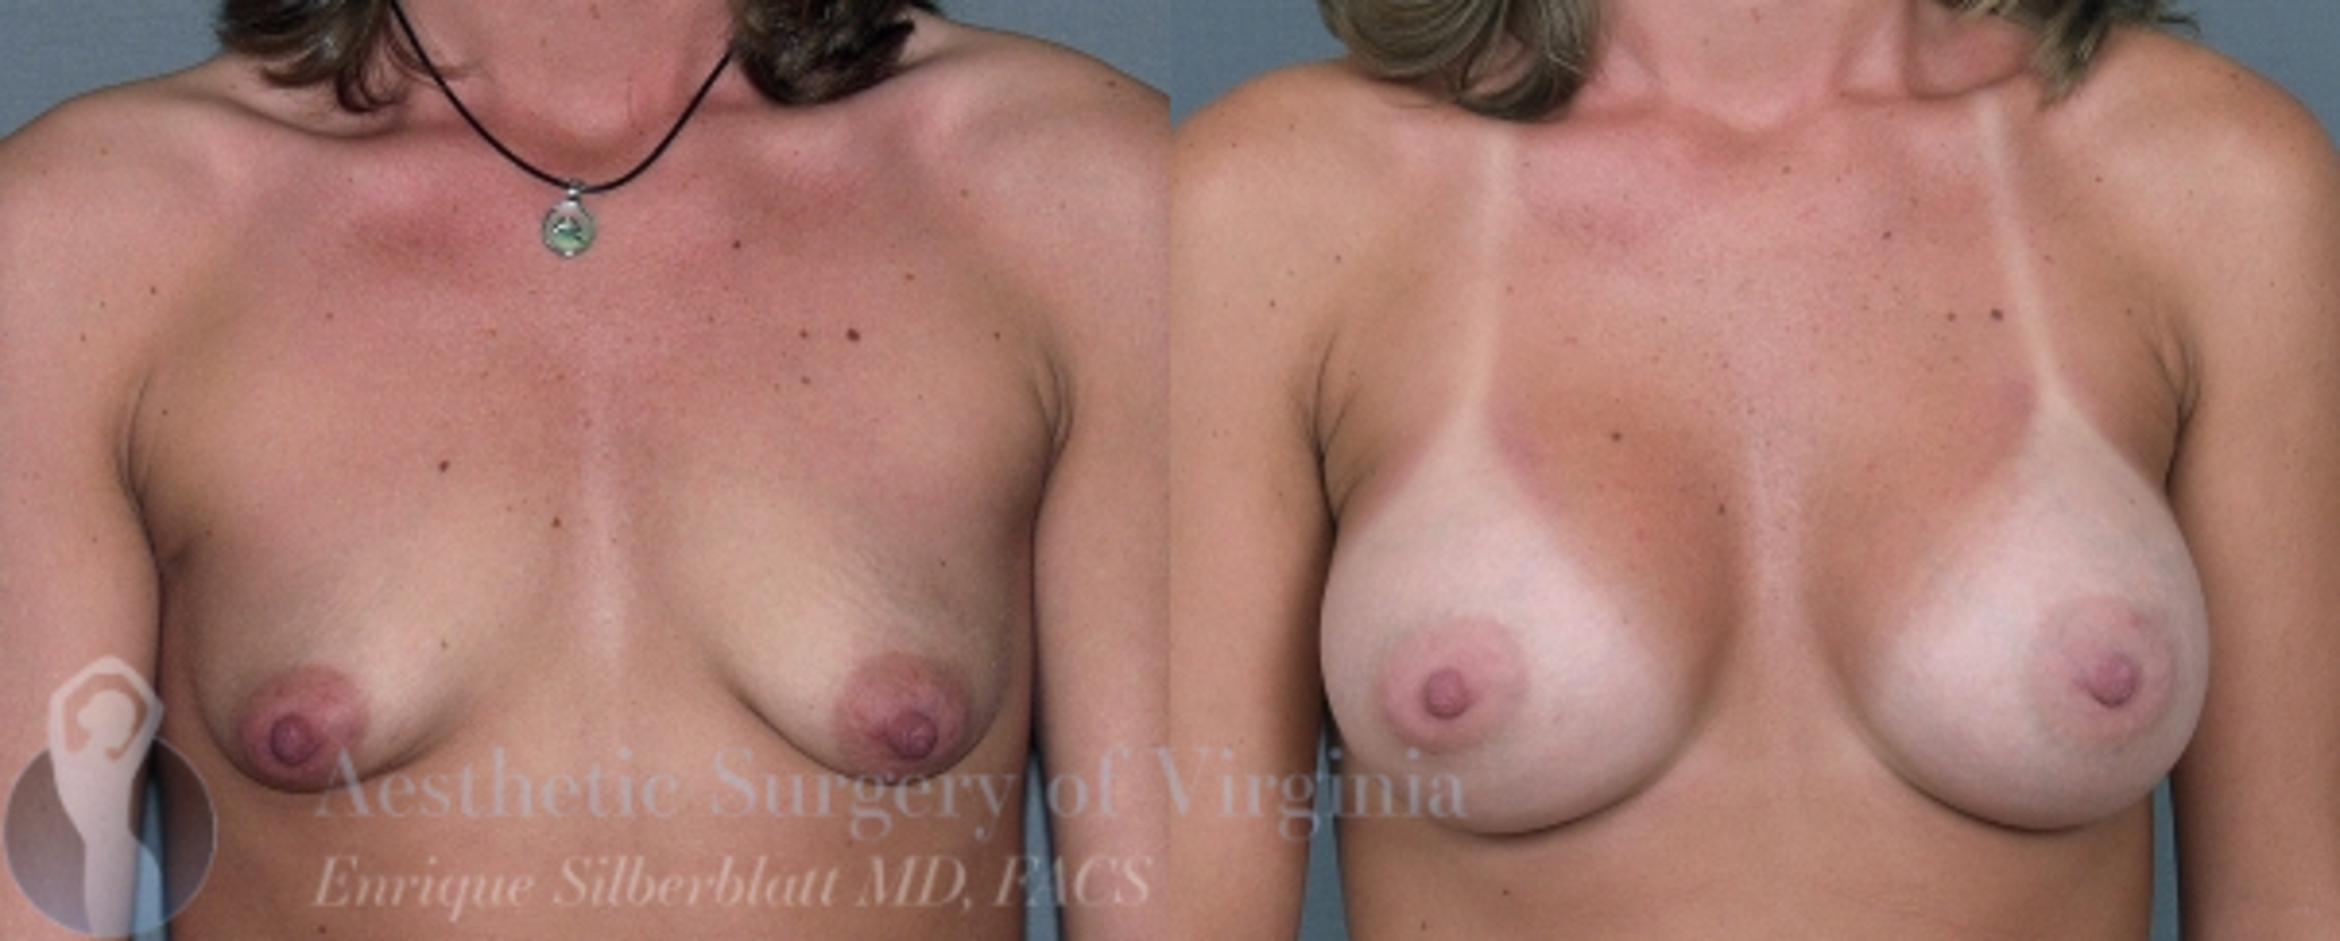 Breast Augmentation Case 4 Before & After View #1 | Roanoke, VA | Aesthetic Surgery of Virginia: Enrique Silberblatt, MD